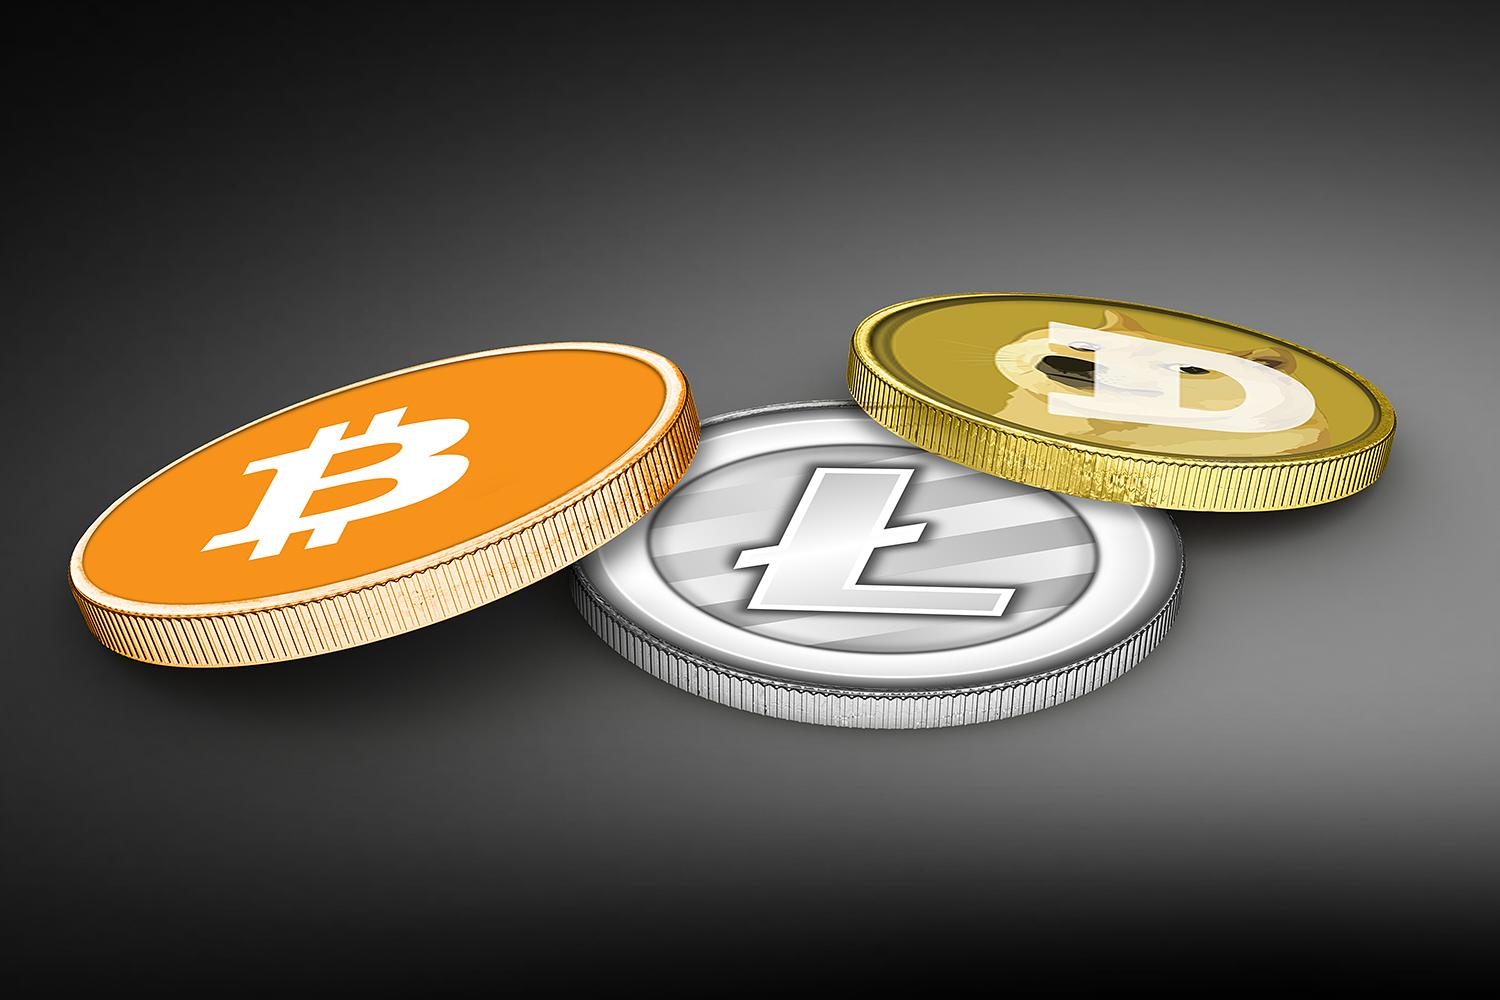 How To Buy Bitcoin, Litecoin, And Dogecoin